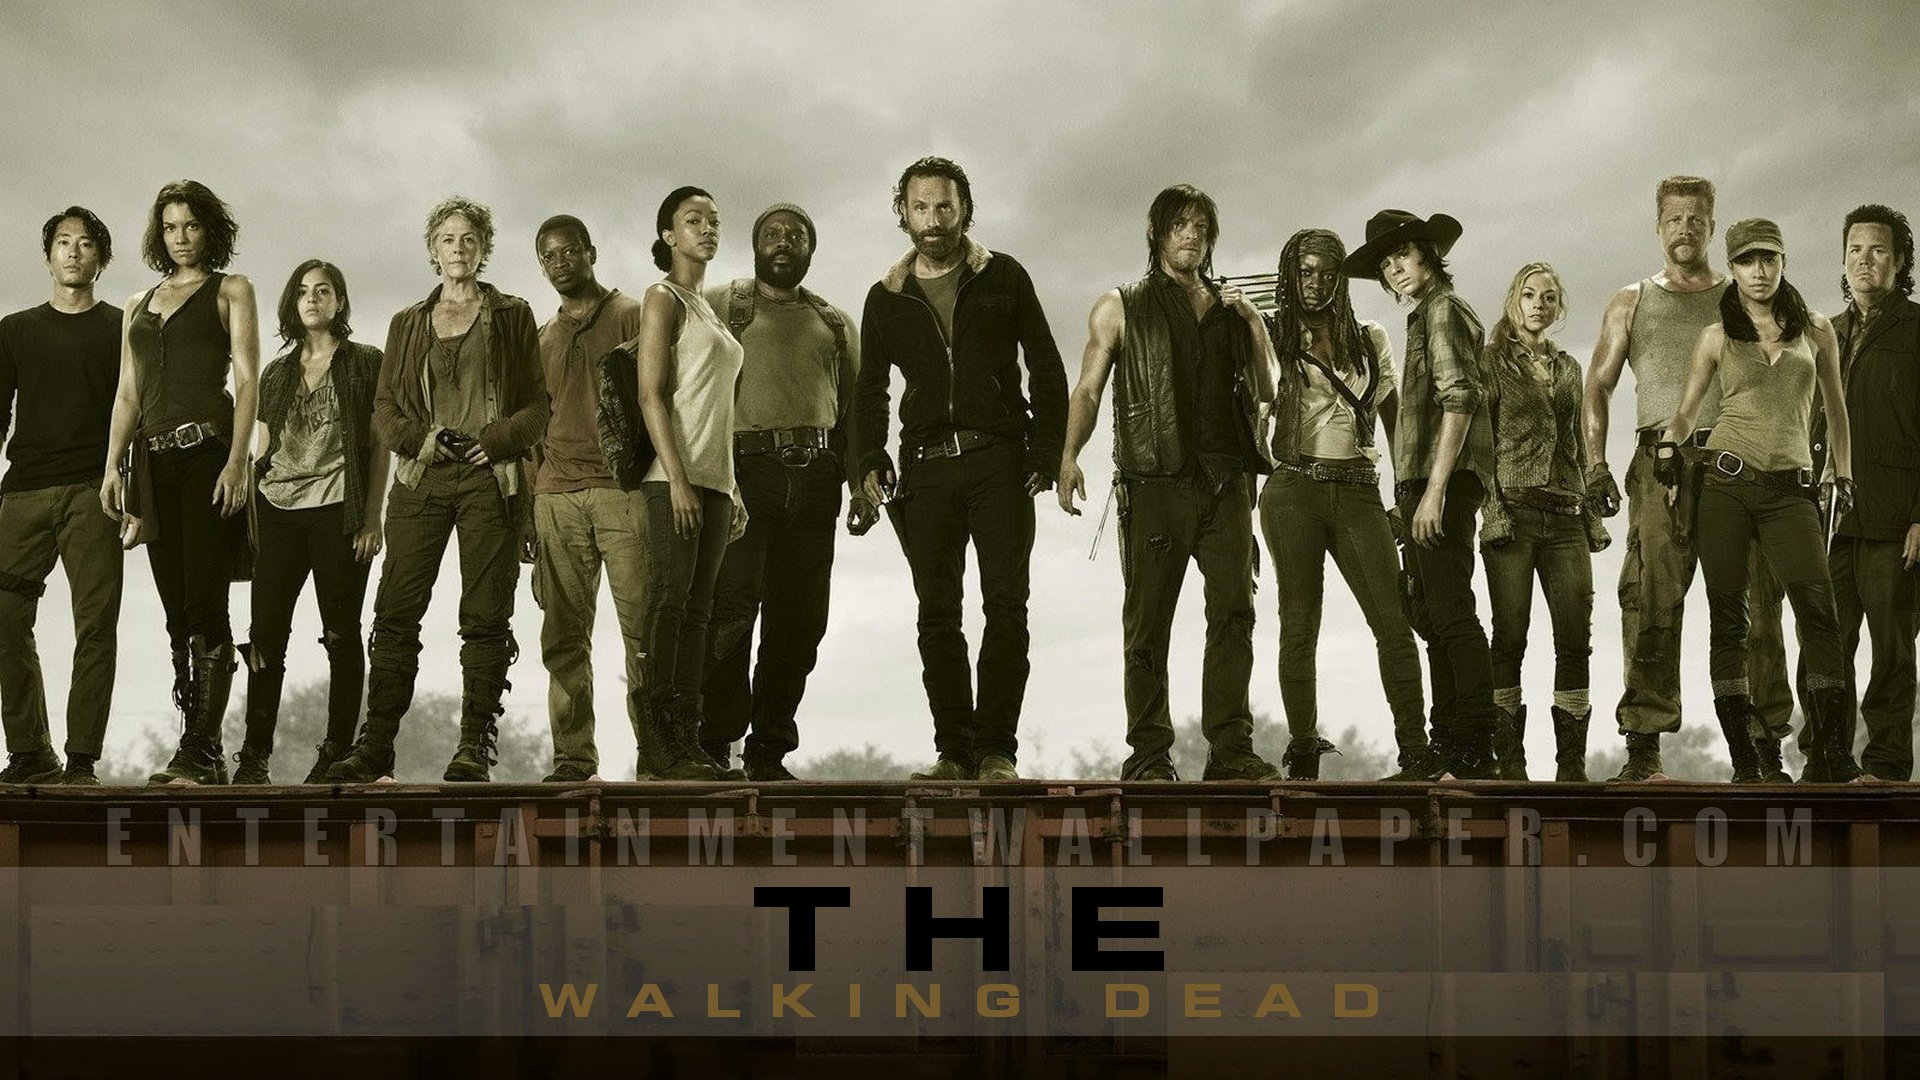 the walking dead wallpapers - sf wallpaper